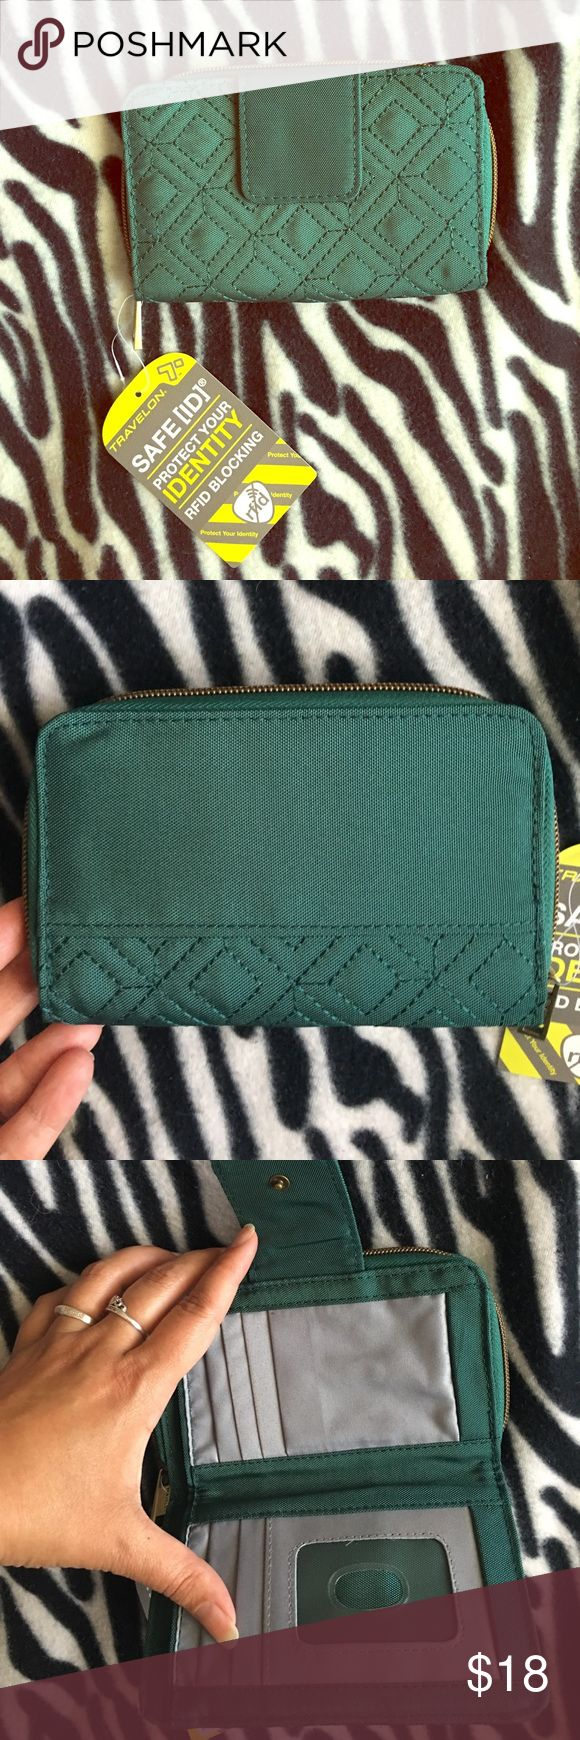 """🆕Travelon RFID Wallet New with tags. Beautiful dark green color, quilted front. RFID blocking wallet--protect your identity! 6"""" x 4"""" x 1"""". I bought a set of two, only need one. Travelon Bags Wallets"""